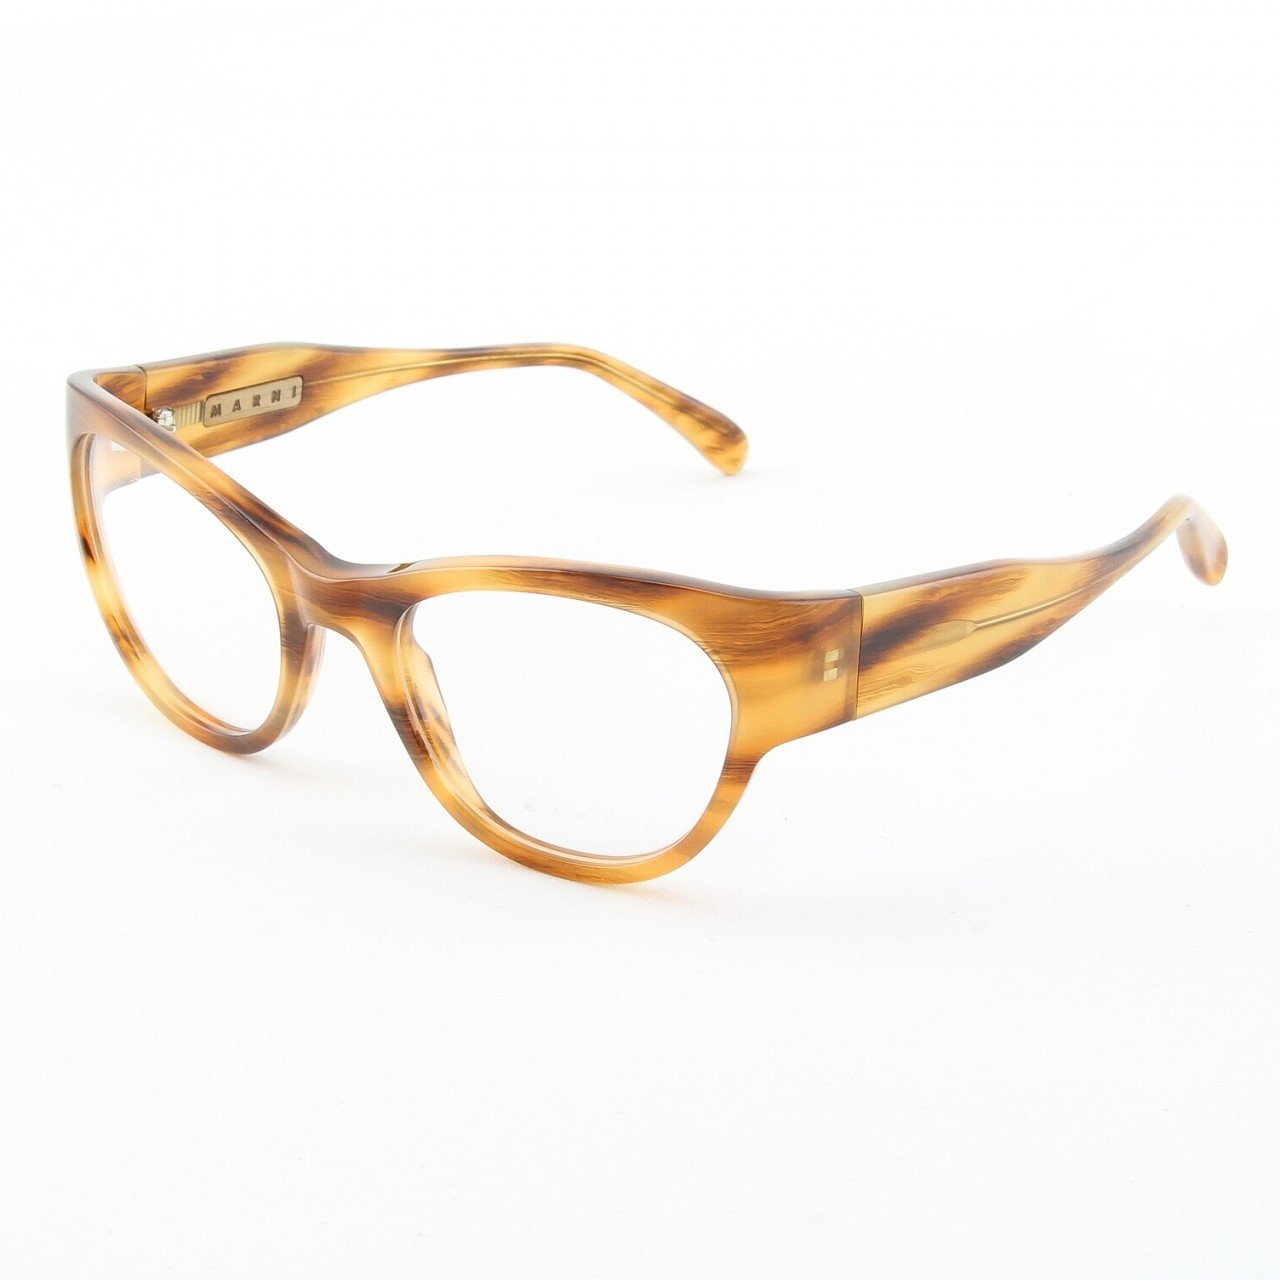 Marni MA683S Eyeglasses Col. 06 Classic Tortoise with Clear Lenses